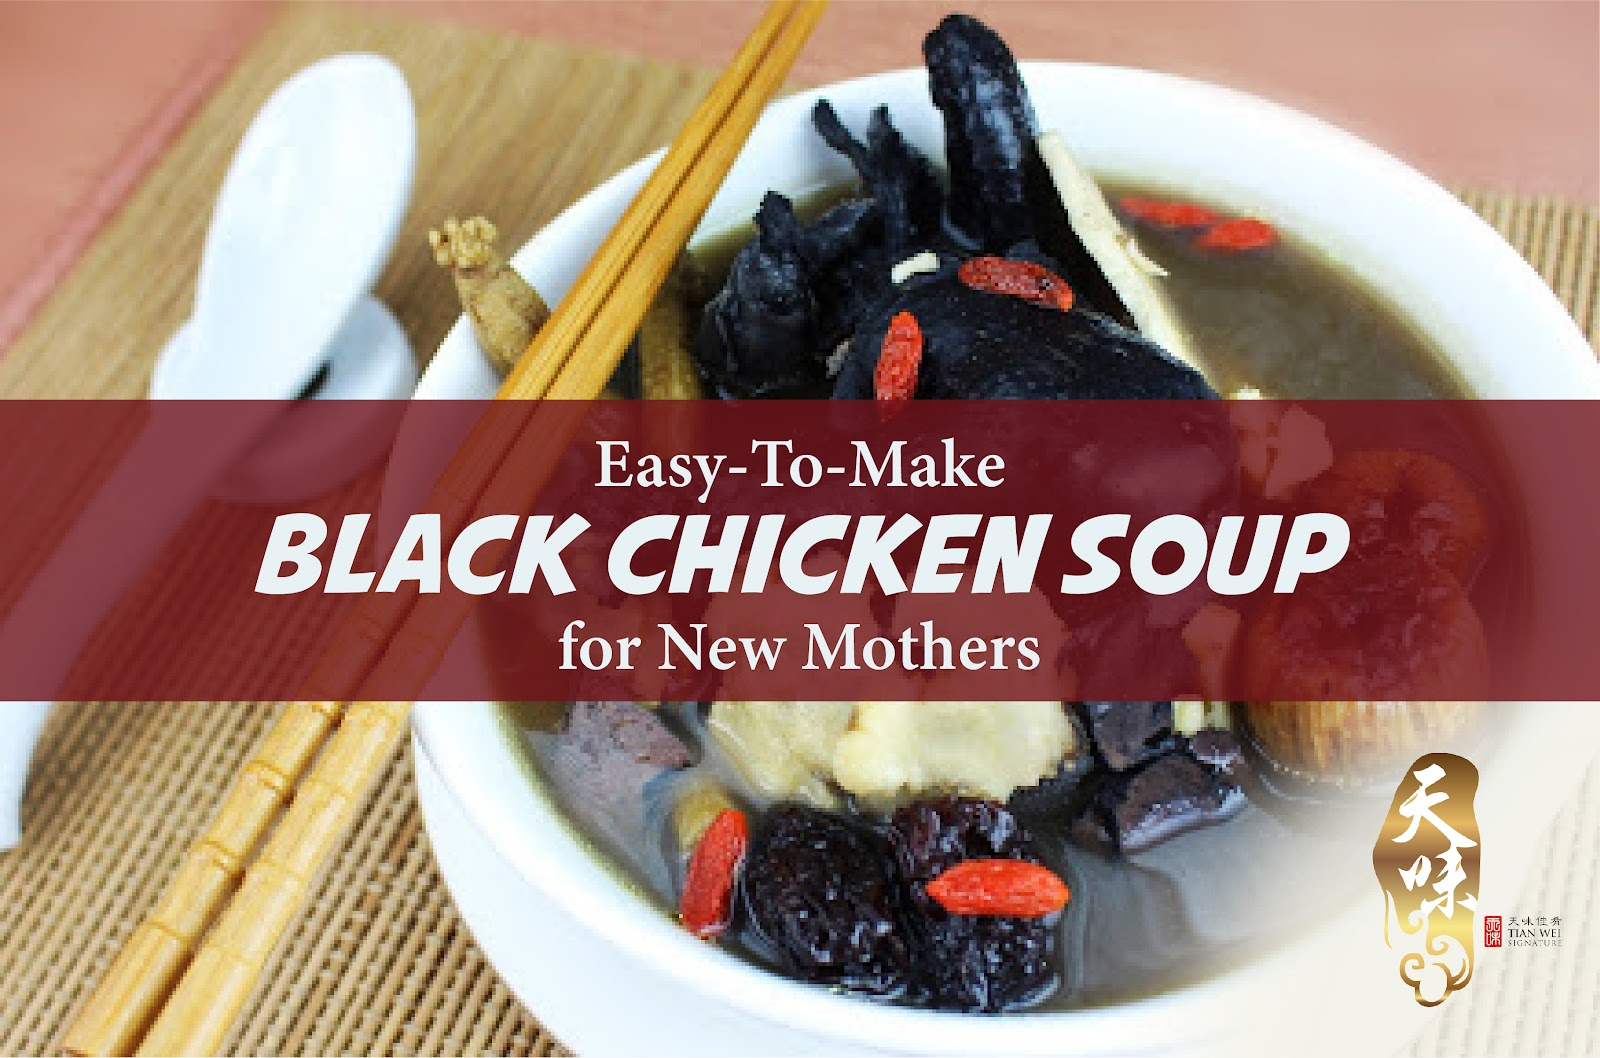 Easy-To-Make Black Chicken Soup for New Mothers